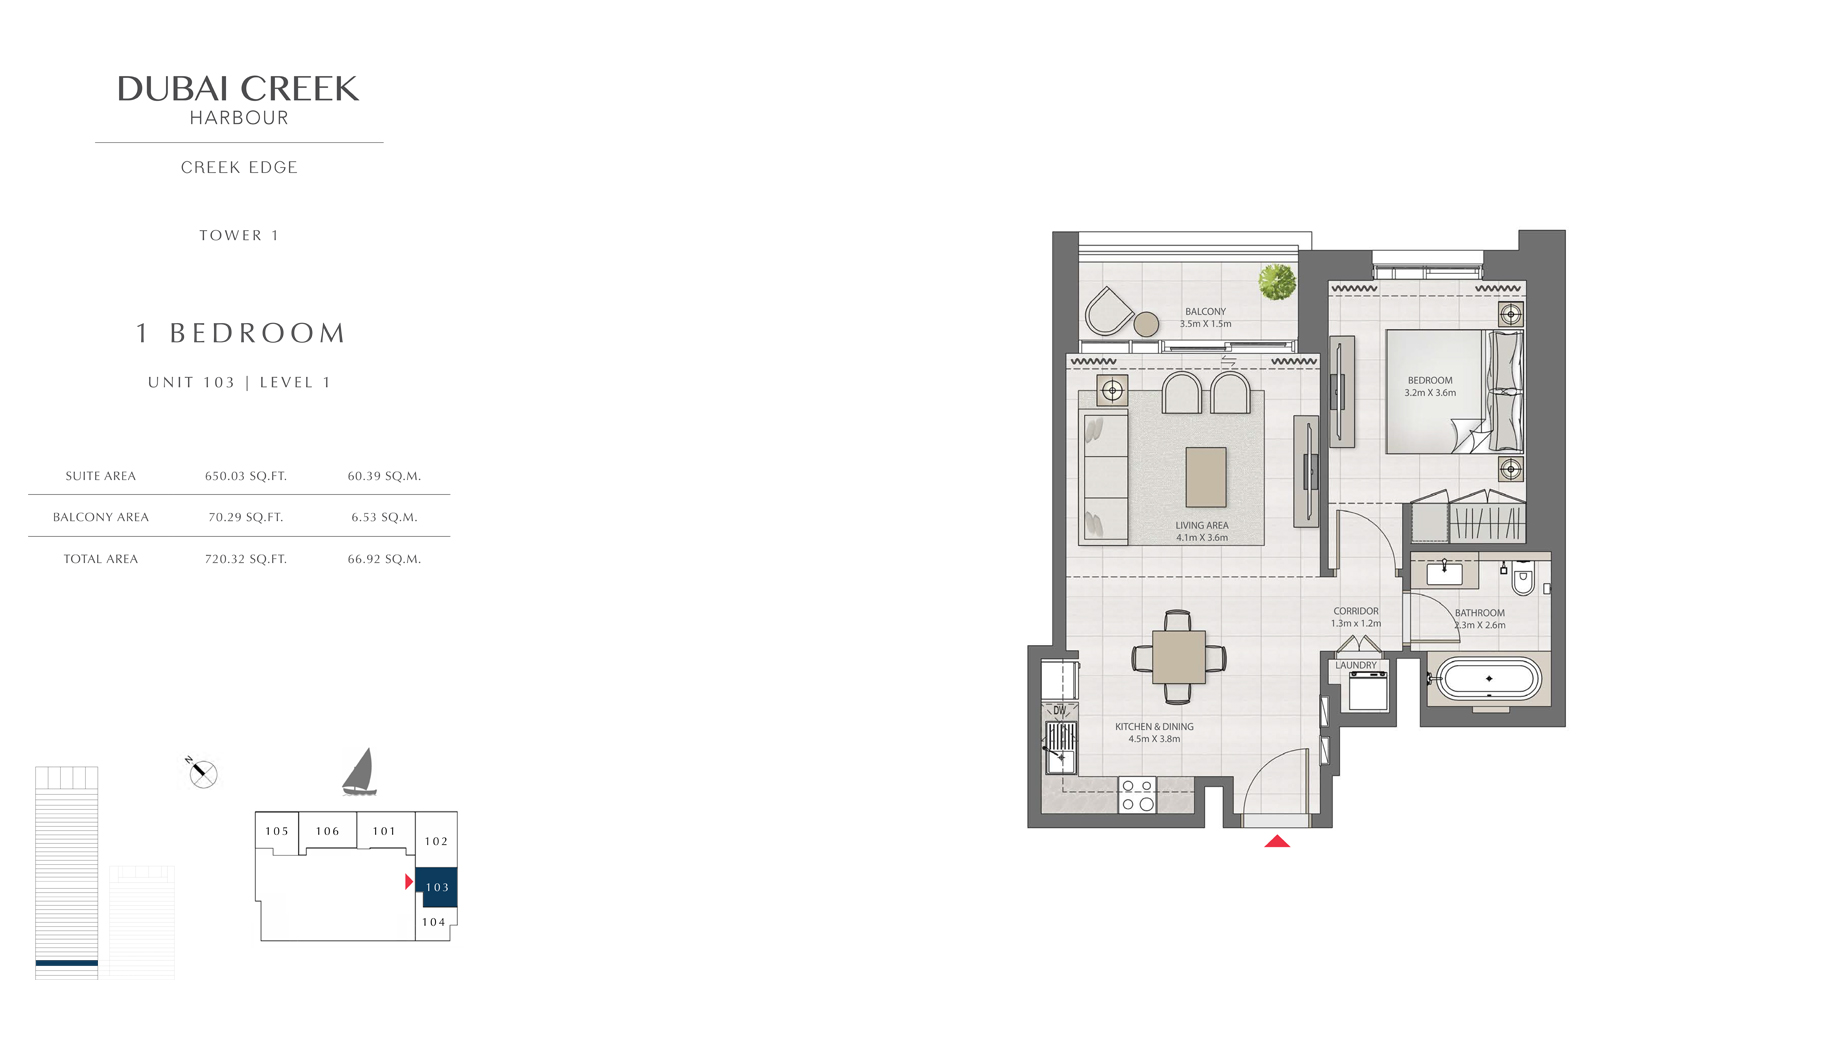 1 Bedroom Tower 1 Unit 103 Level 1  Size 720 sq.ft